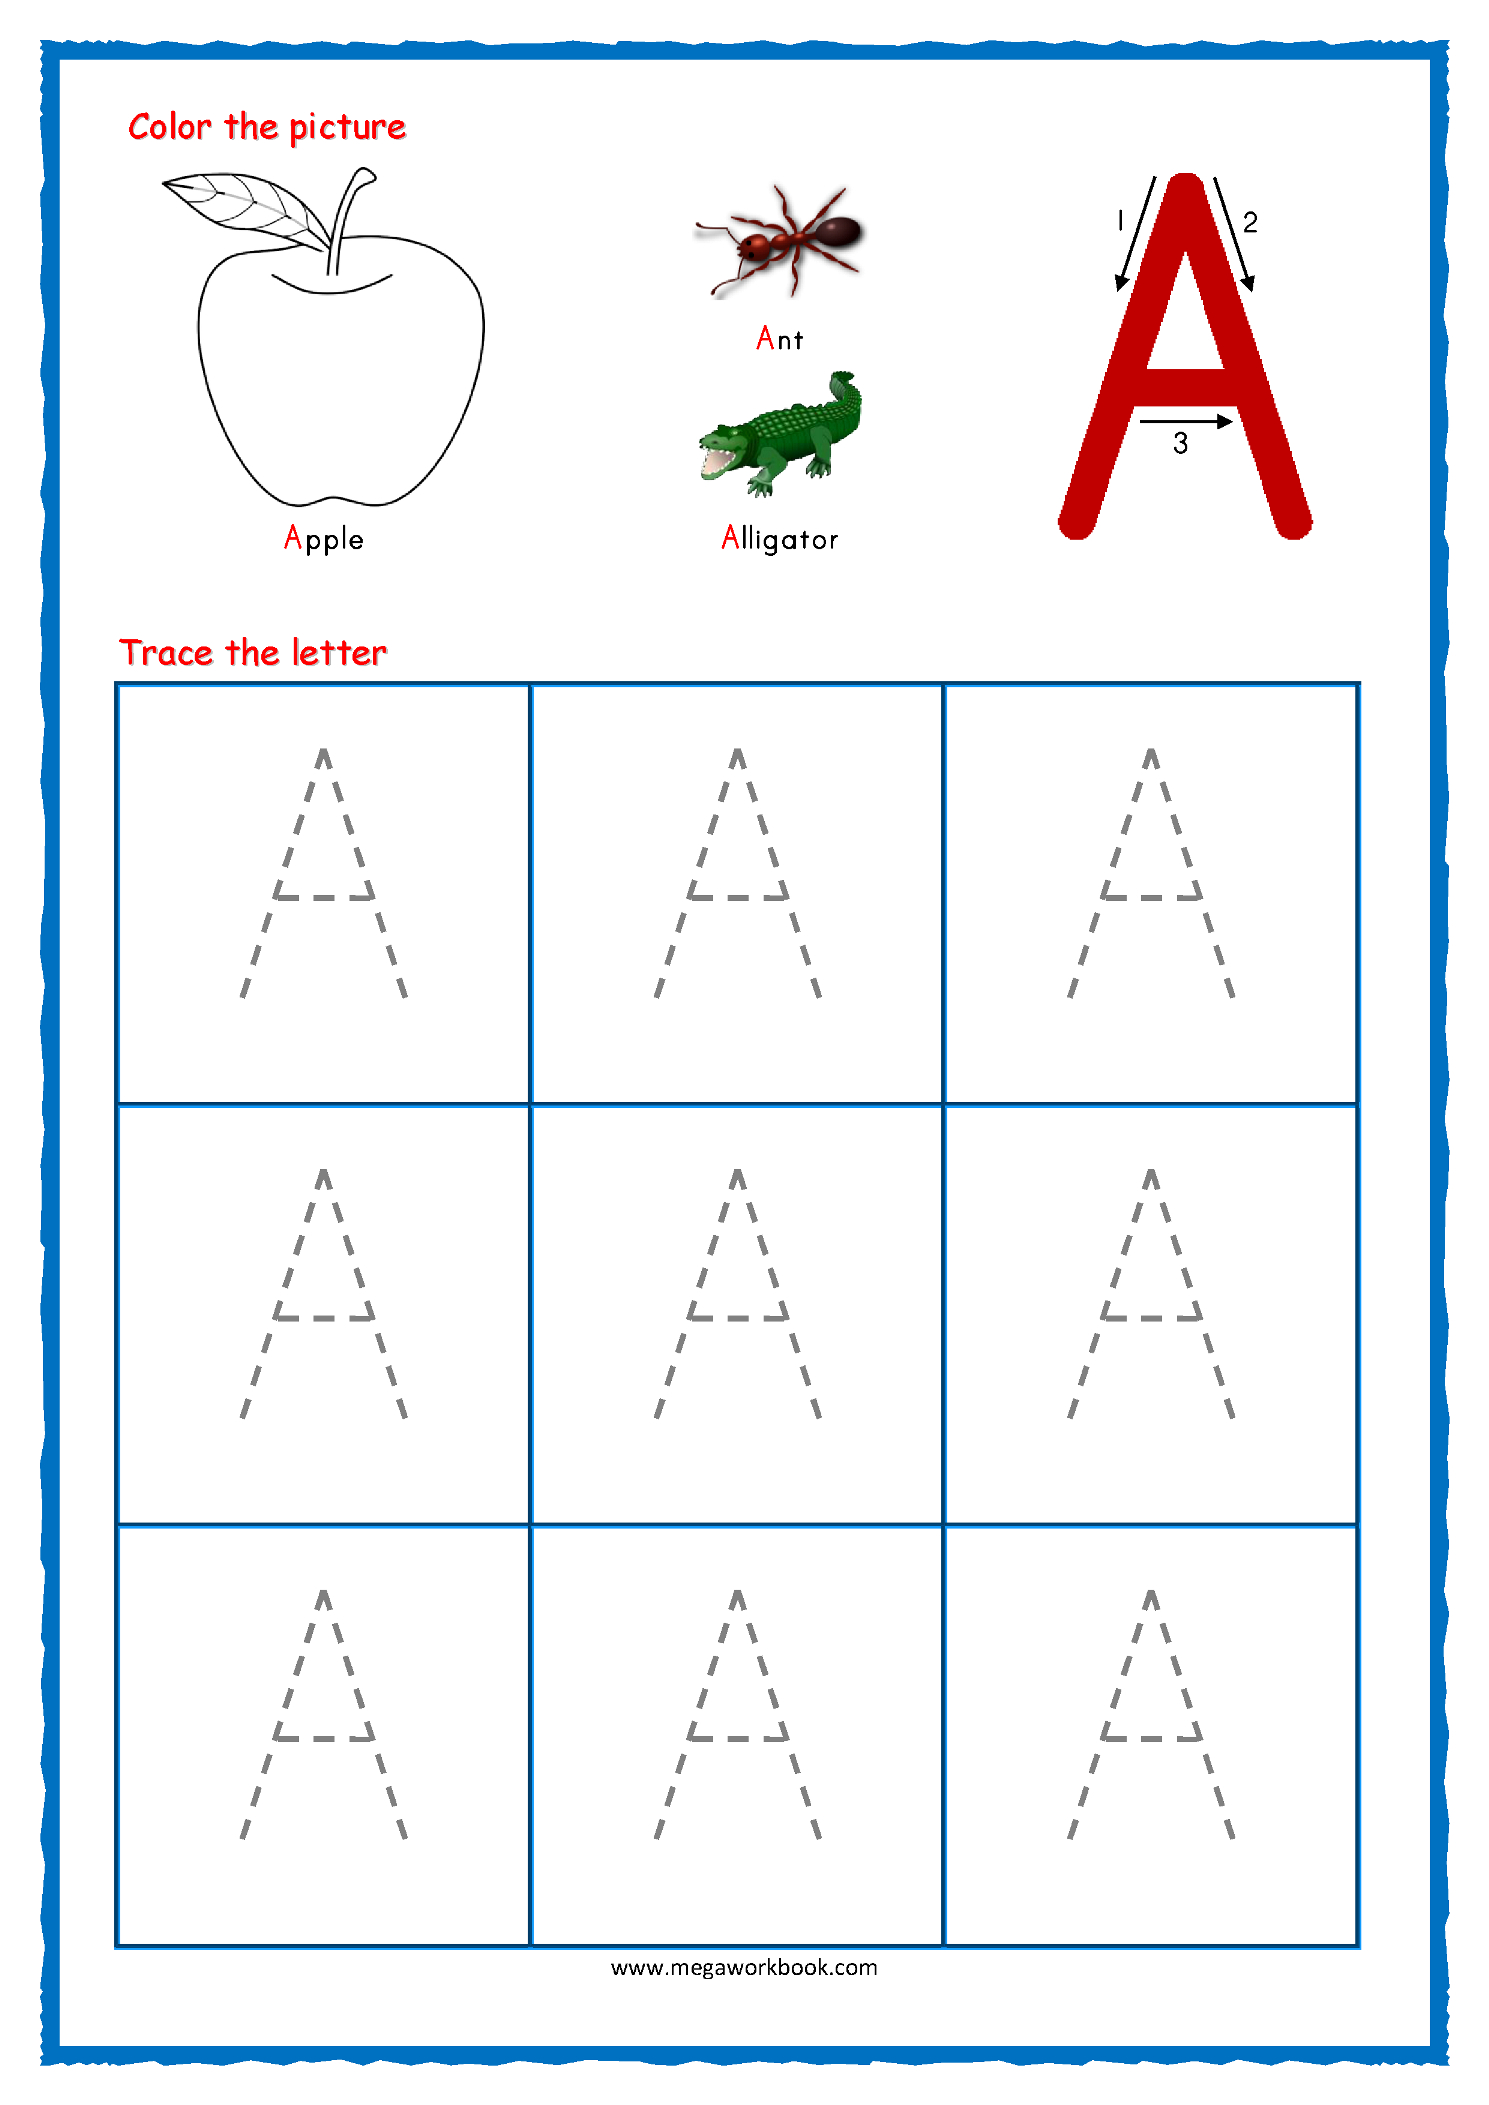 Coloring Book : Coloring Book Alphabet Tracing Worksheets throughout Letter Tracing Worksheets Uppercase